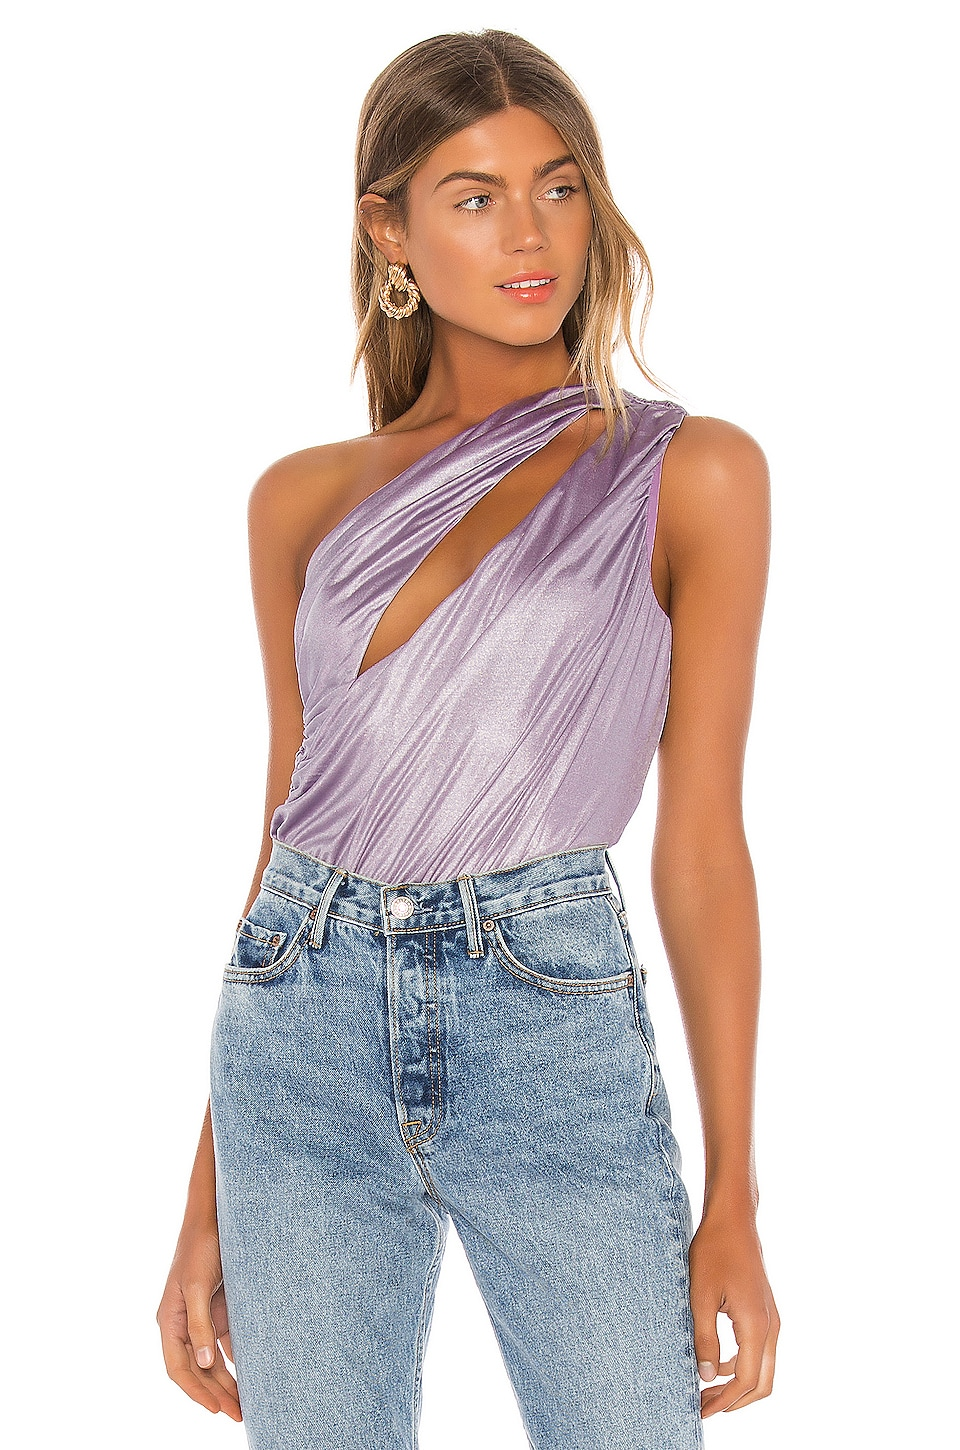 h:ours Luna Bodysuit in Lilac Grey